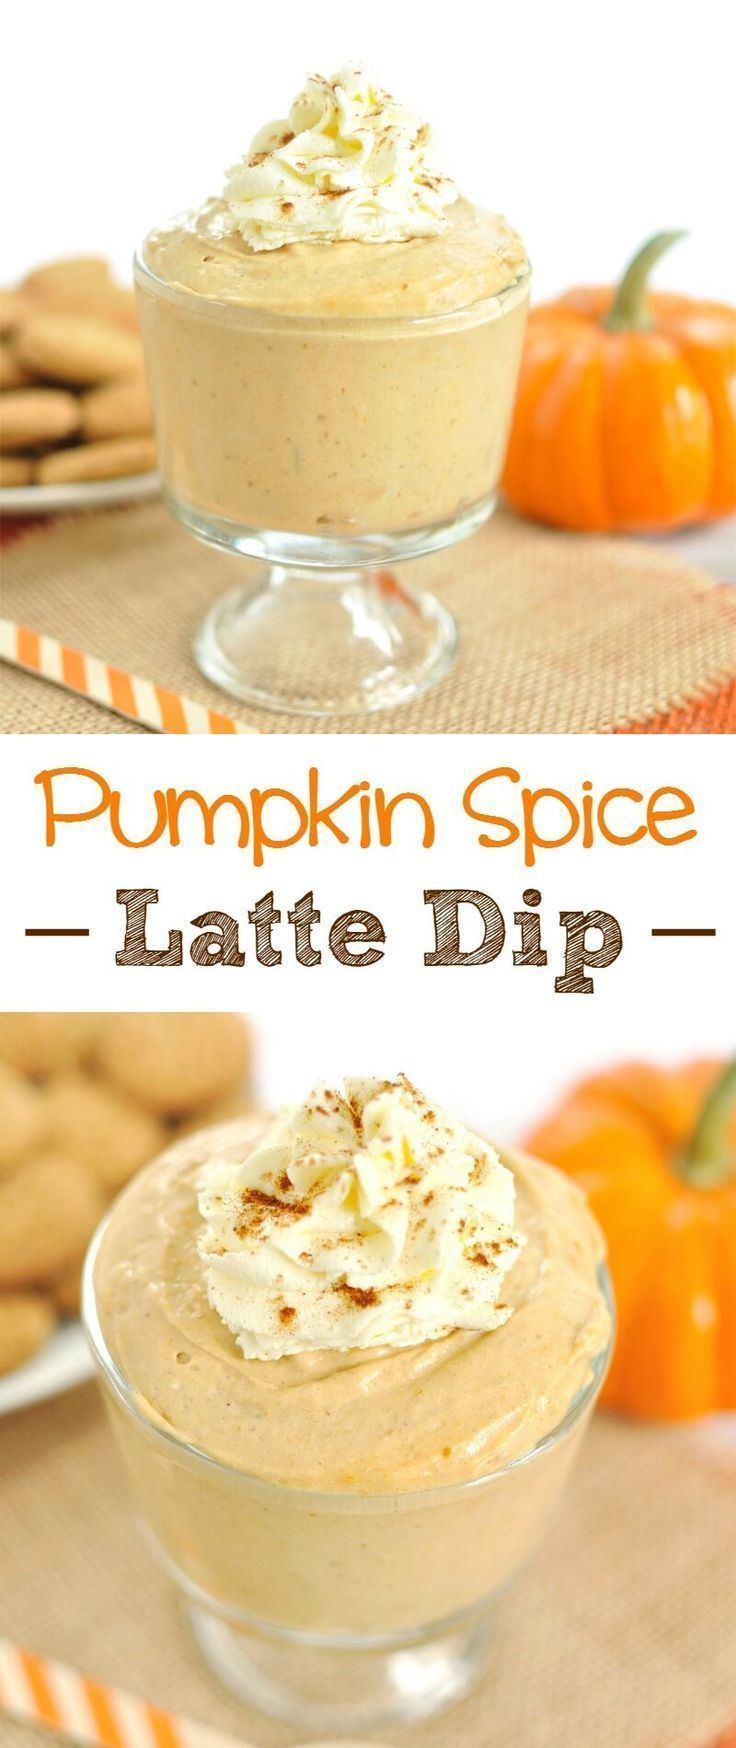 All the flavors of a pumpkin spice latte into a festive fall dessert. This Pumpkin Spice Latte Cream Cheese Dip will be a hit at your fall gathering or Halloween party. Serve with apples as a simple fruit dip for a fall appetizer or ginger snaps, graham crackers or wafers as an easy fall dessert recipe. This is a Starbucks PSL in a dip.